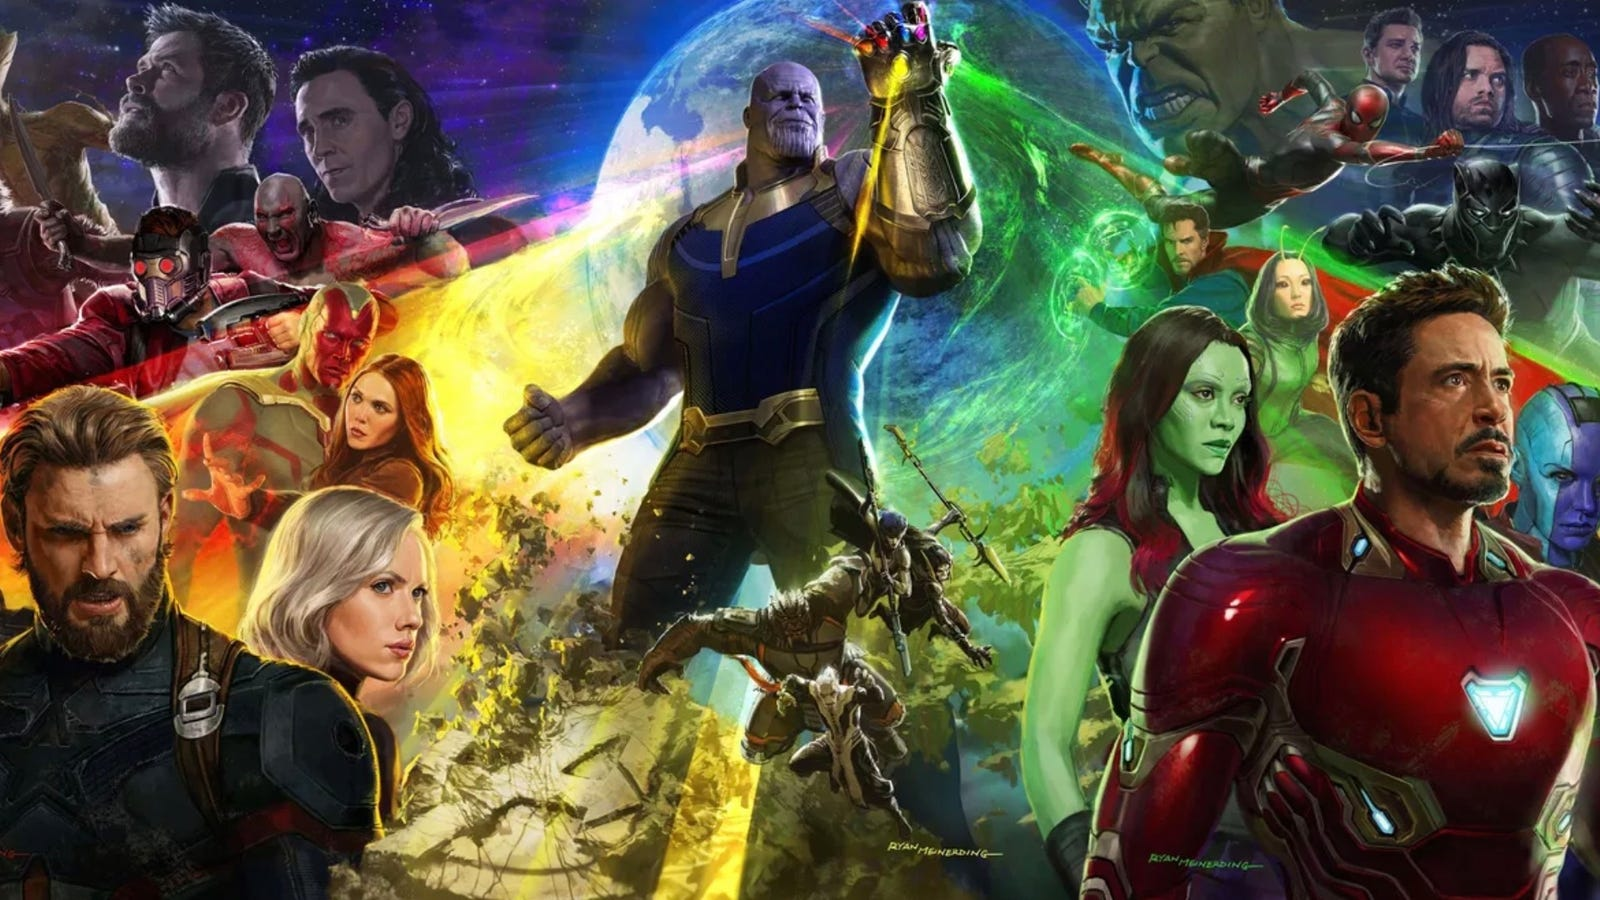 How Did You Do on This Marvel Movie Trivia Quiz?